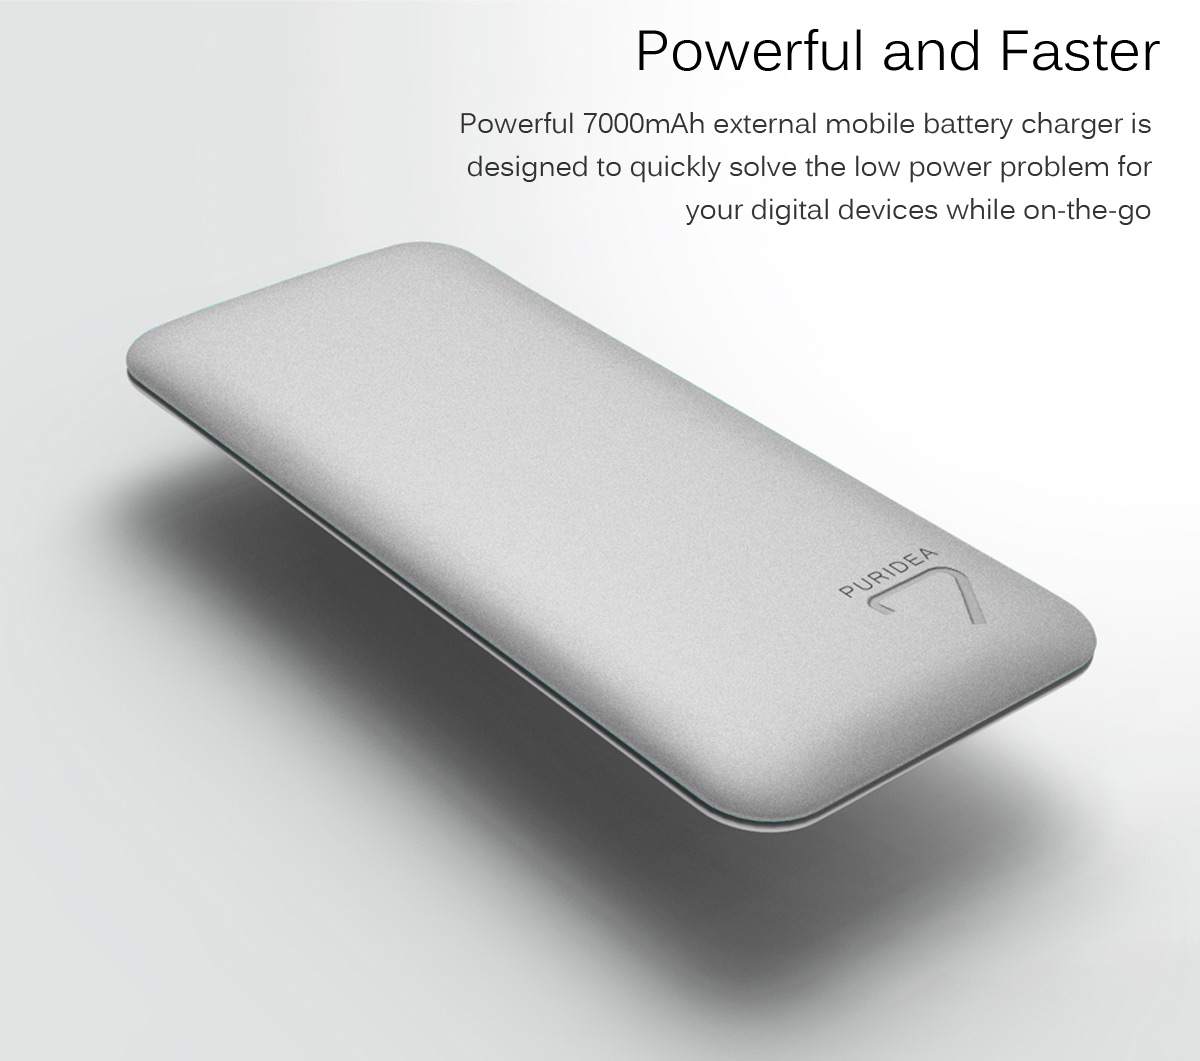 PURIDEA S4 7000mAh Mobile Power Bank Dual USB Output Battery Charger for  iPhone 6 / 6 Plus Samsung S6 / S6 Edge Note5 etc